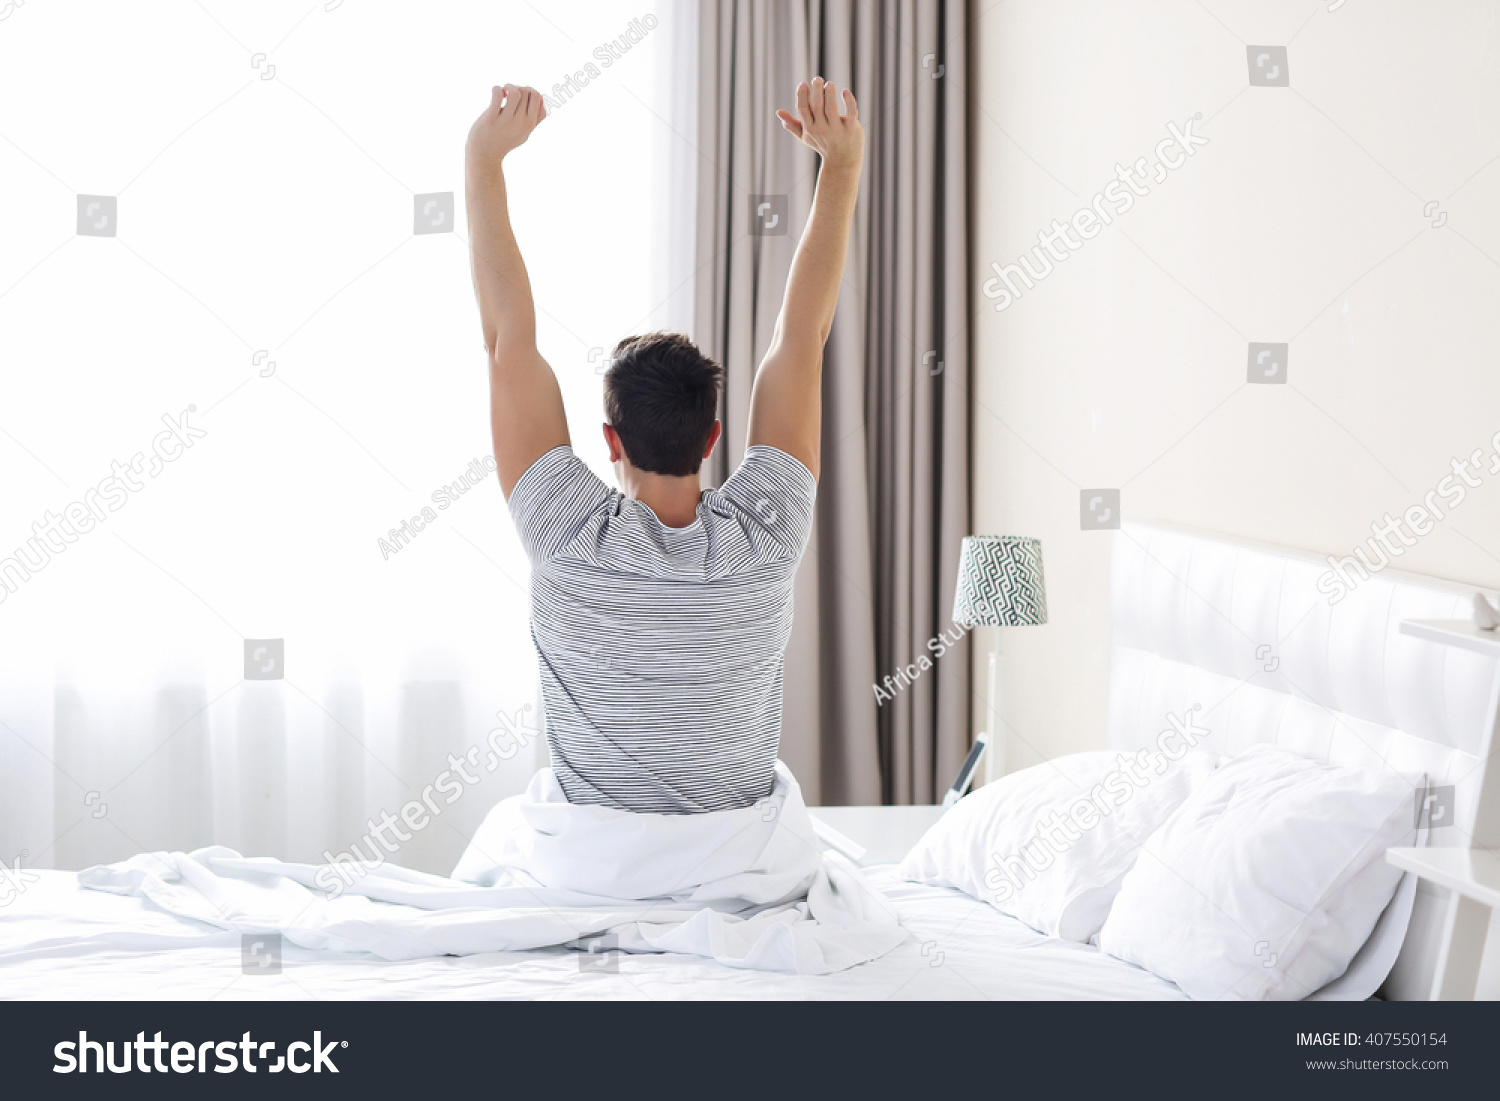 A young man waking up in bed and stretching his arms